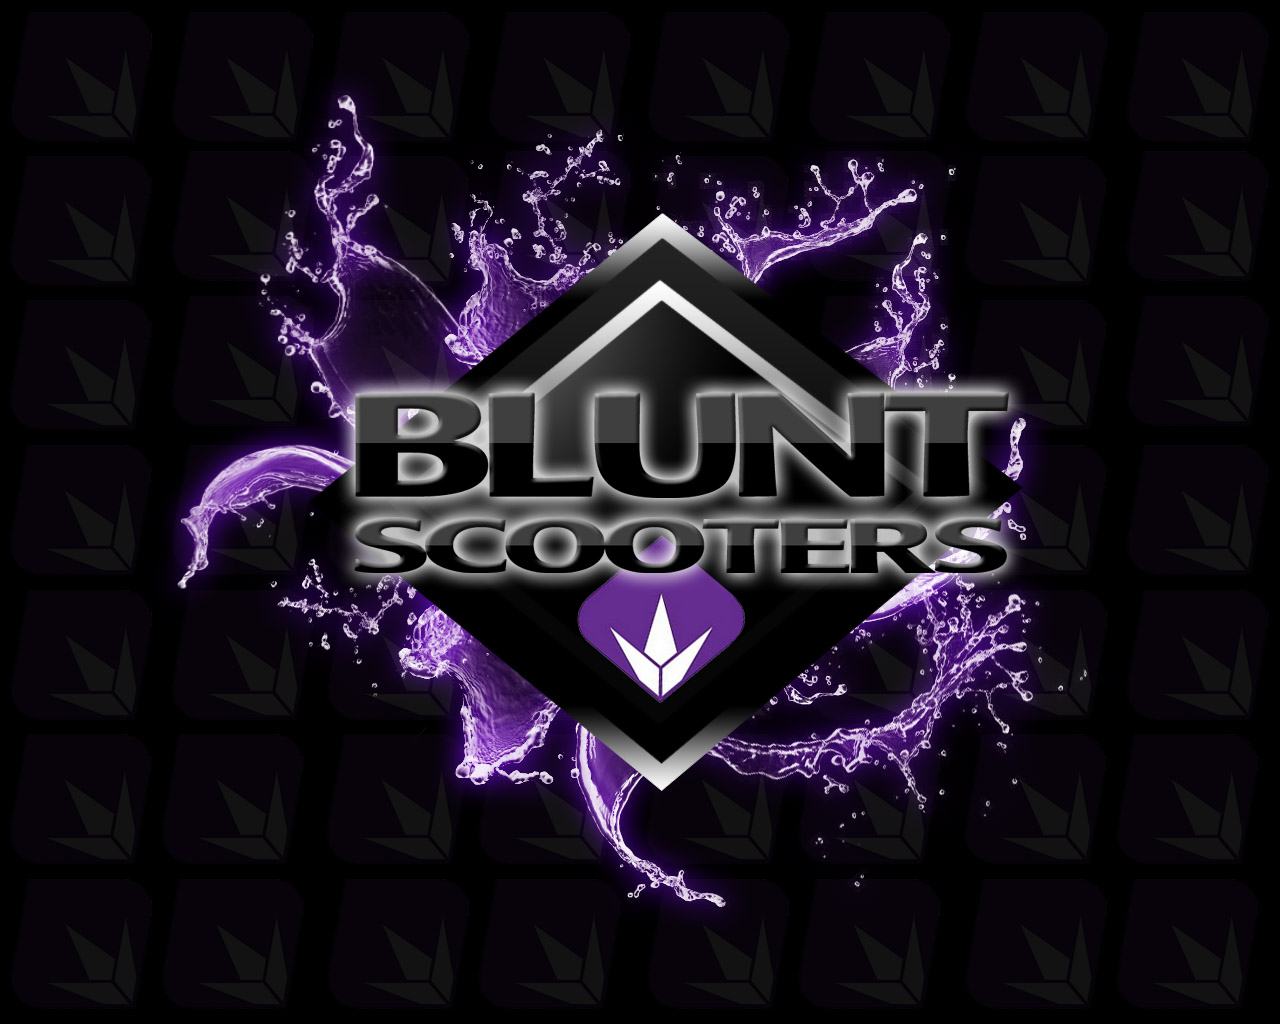 Blunt Scooters Wallpaper